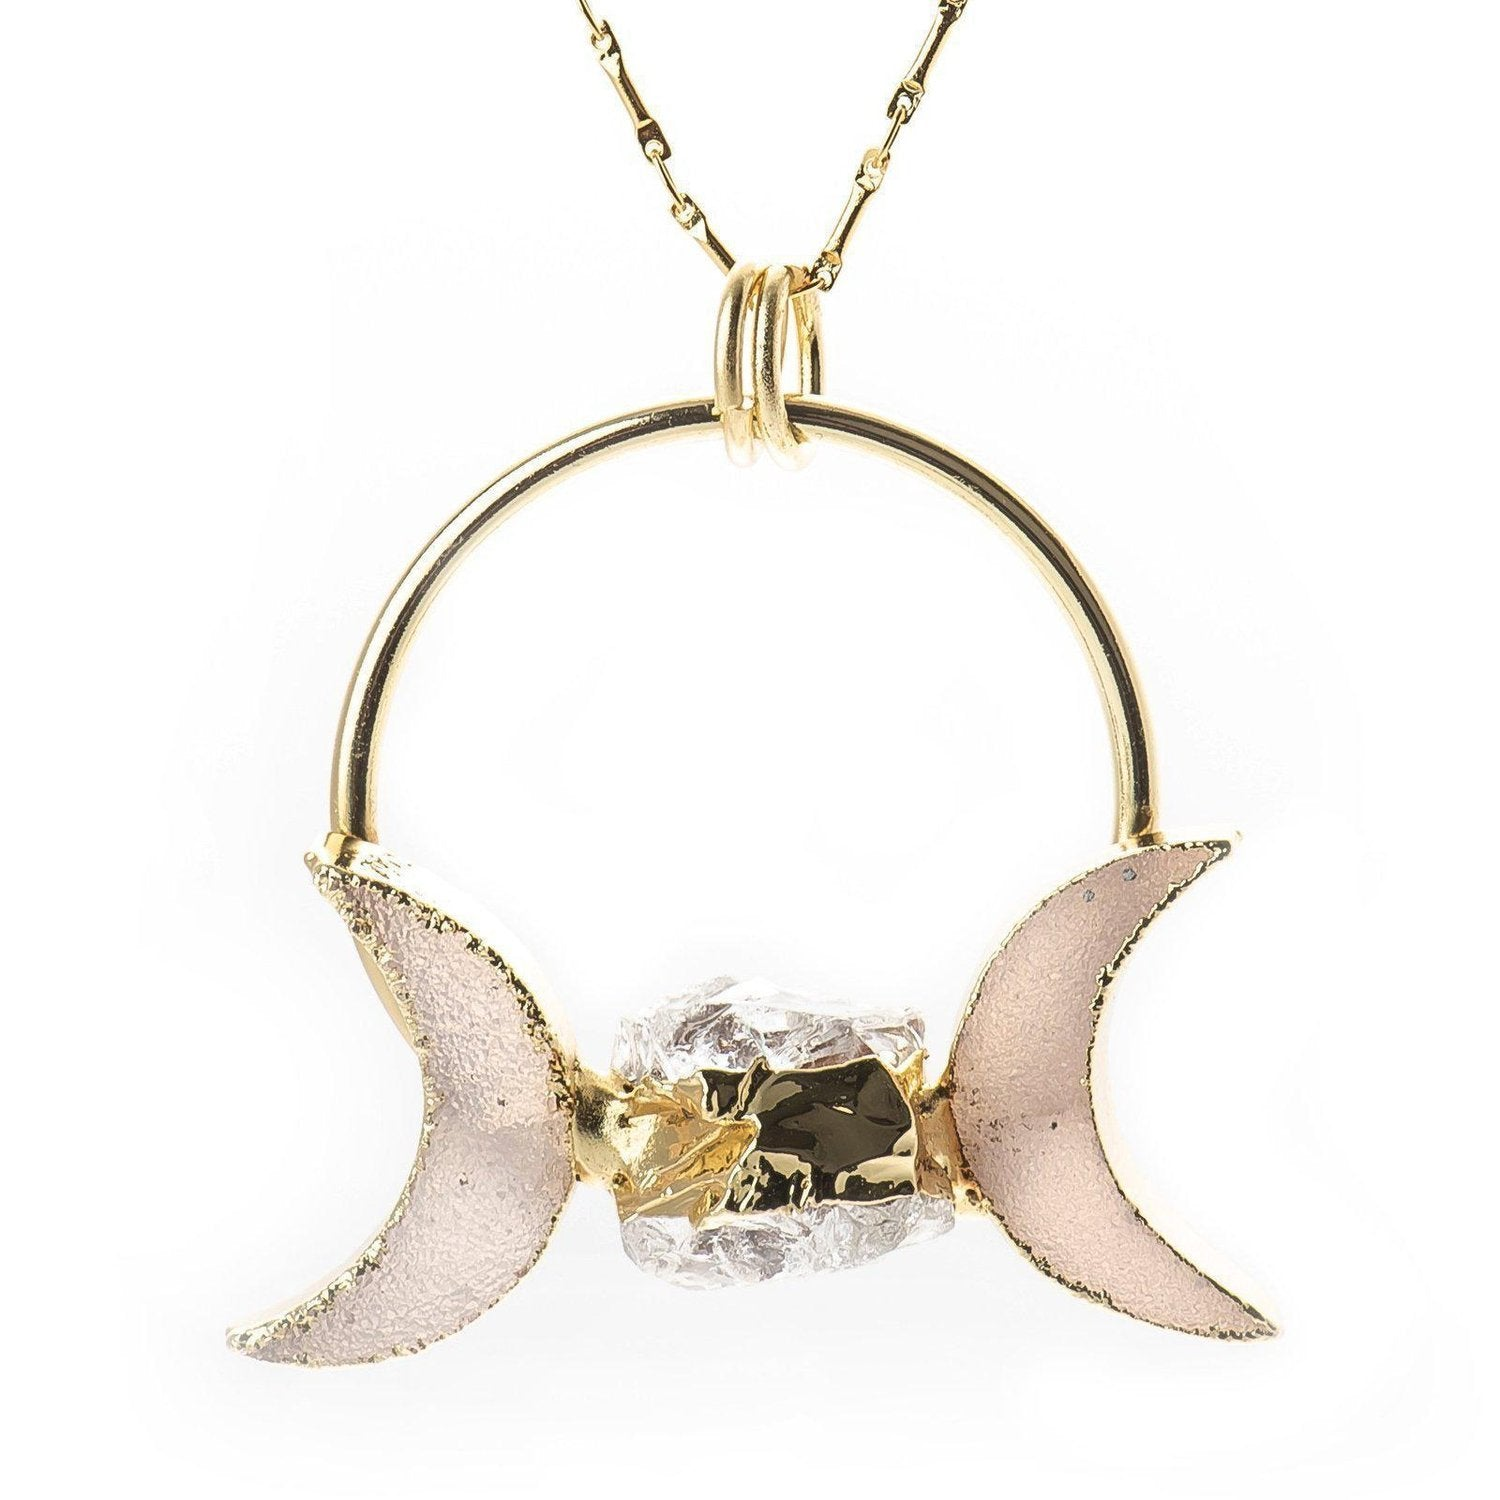 UK BOHO MOON CRESCENT NECKLACE Gold Chain Simple Jewellery Gift Celestial Lunar